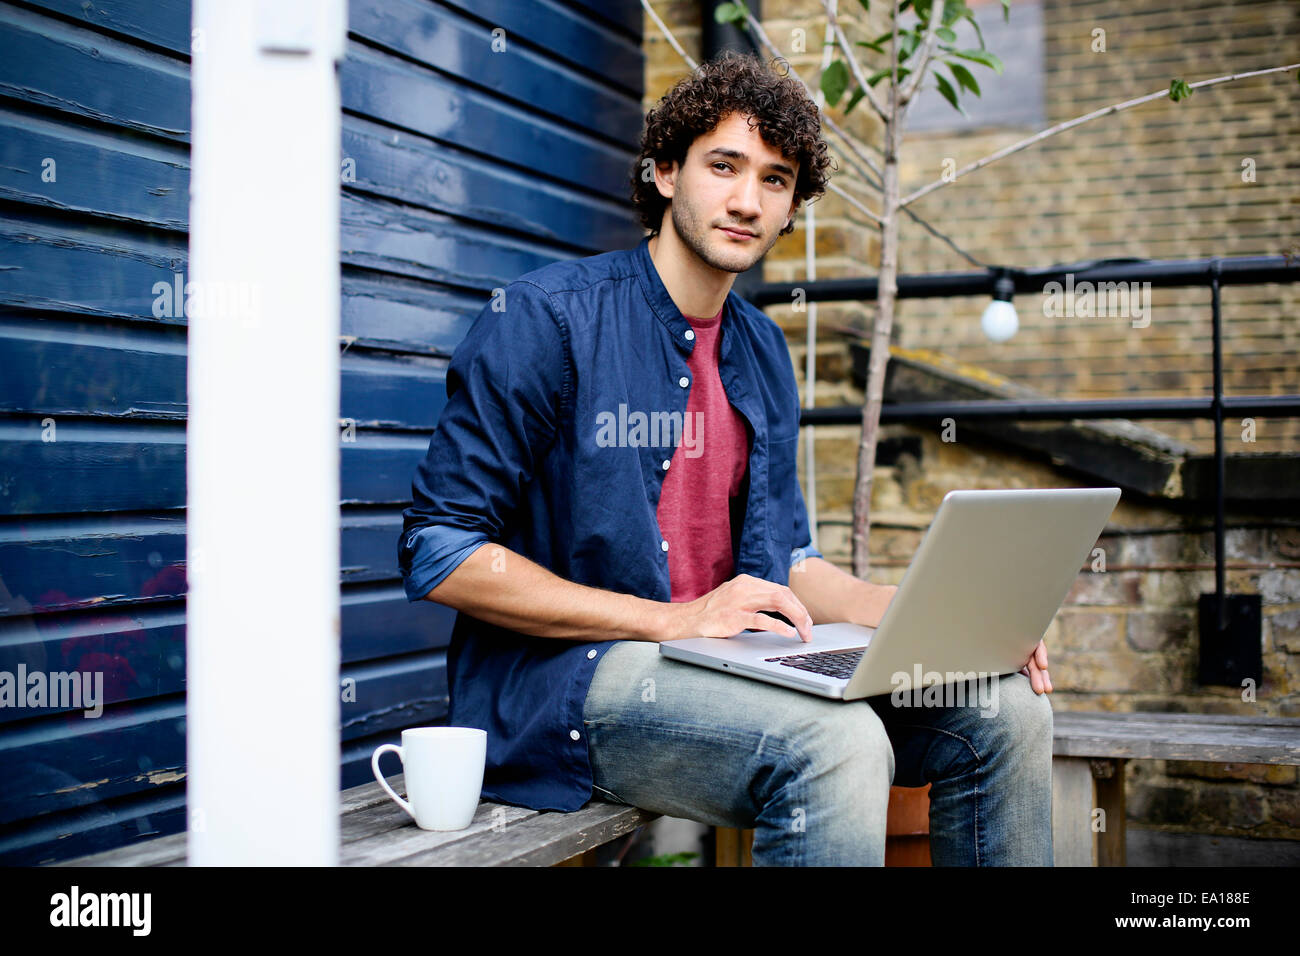 Man using laptop on bench Photo Stock